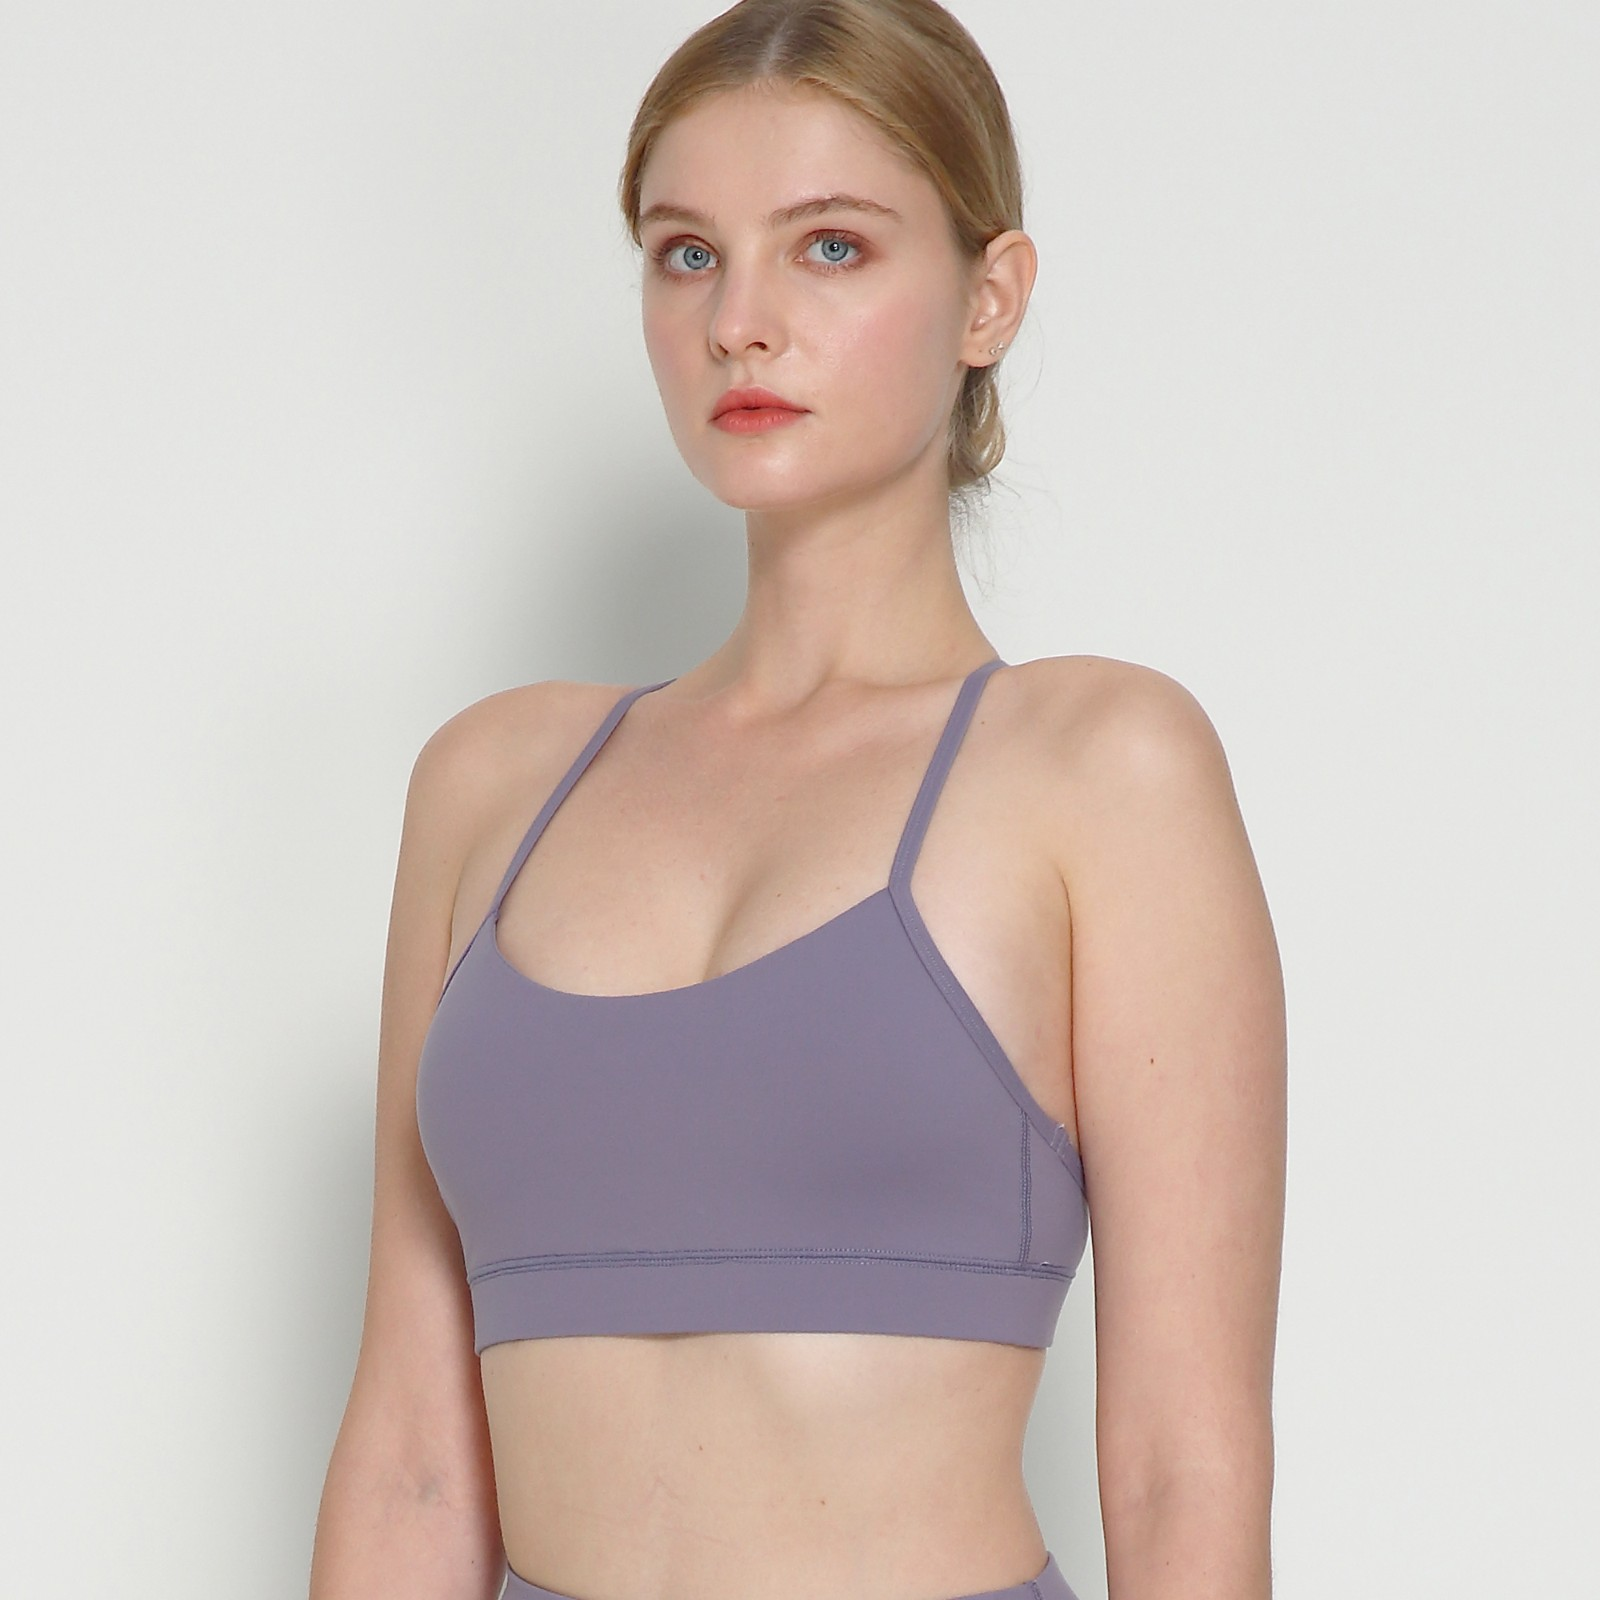 product-Ruiteng-High Quality Workout Sportswear Yoga Bra Top Activewear for Women-img